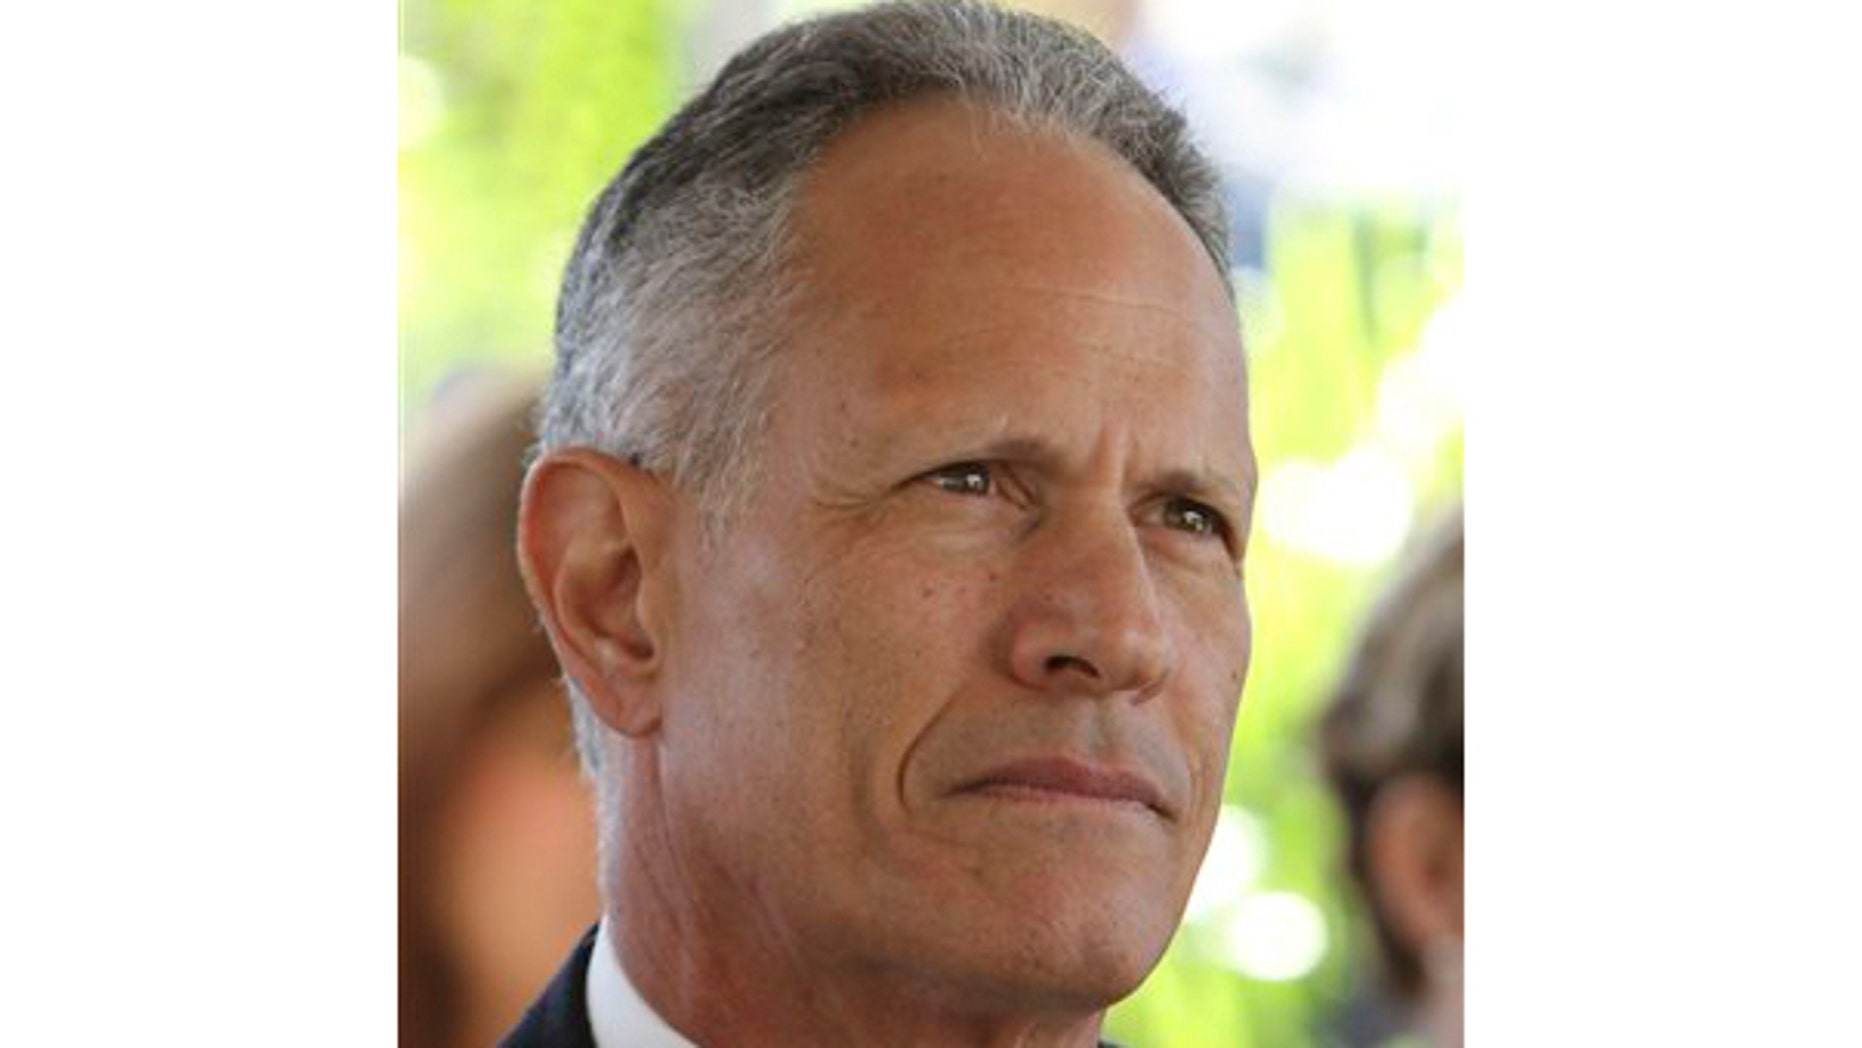 Voters furious with spending decisions and new taxes voted Tuesday to oust Miami-Dade Mayor Carlos Alvarez.